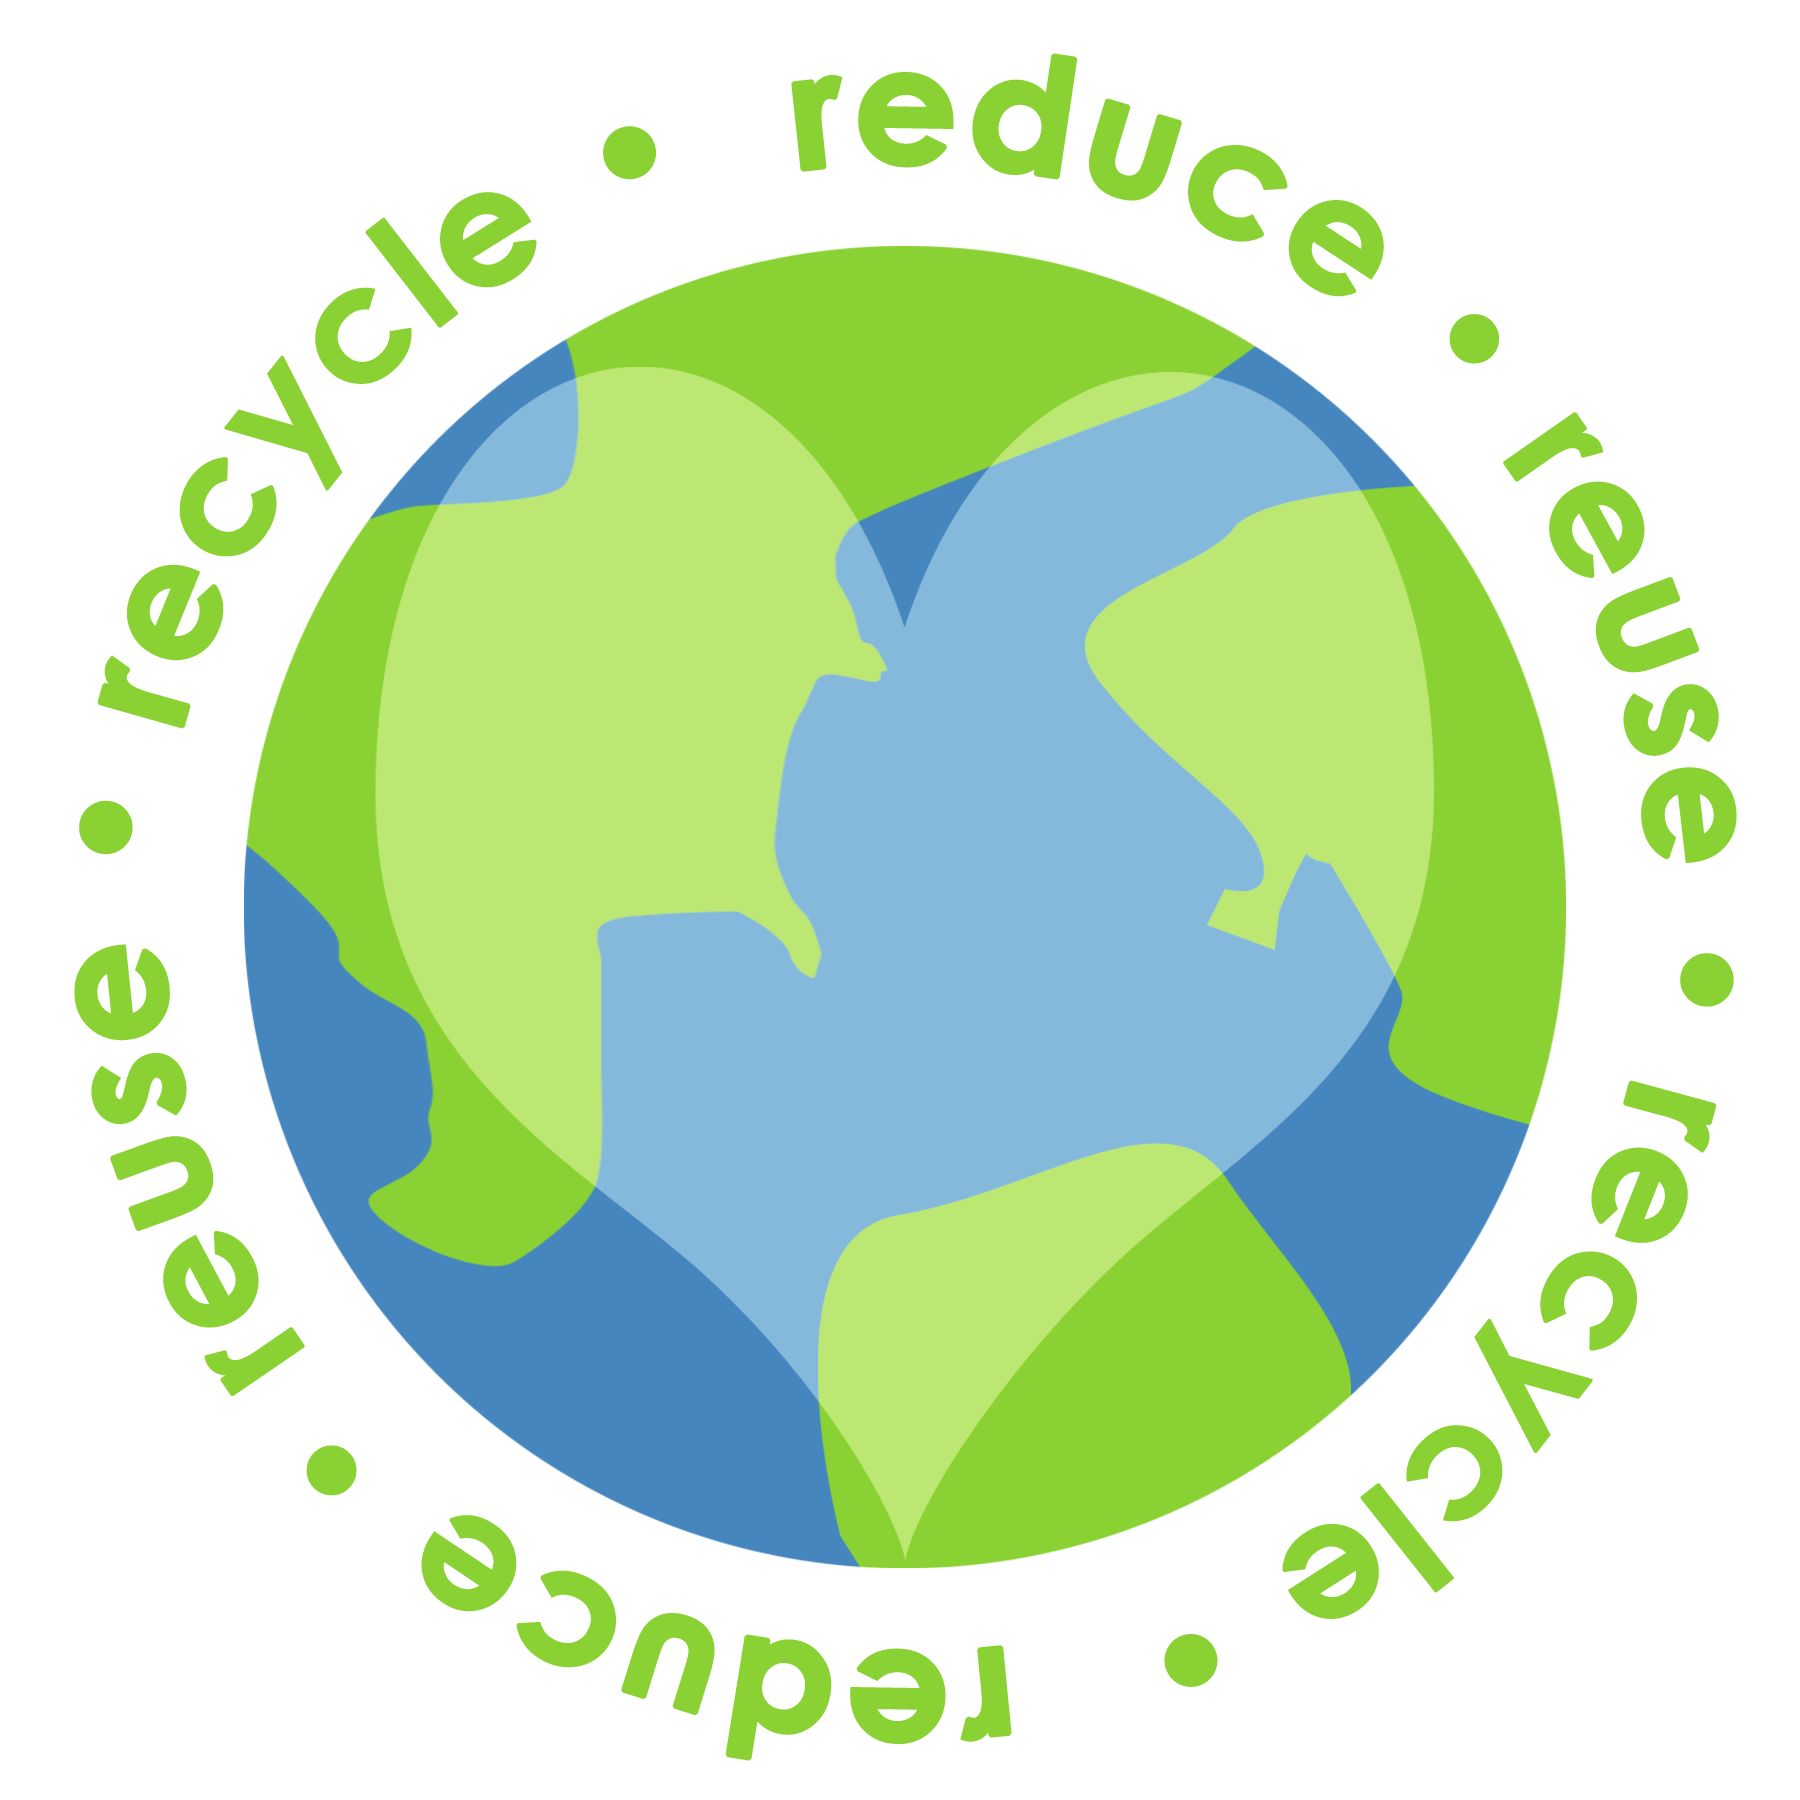 Reduce reuse recycle clipart clip art library download Reduce reuse recycle clipart 2 » Clipart Portal clip art library download